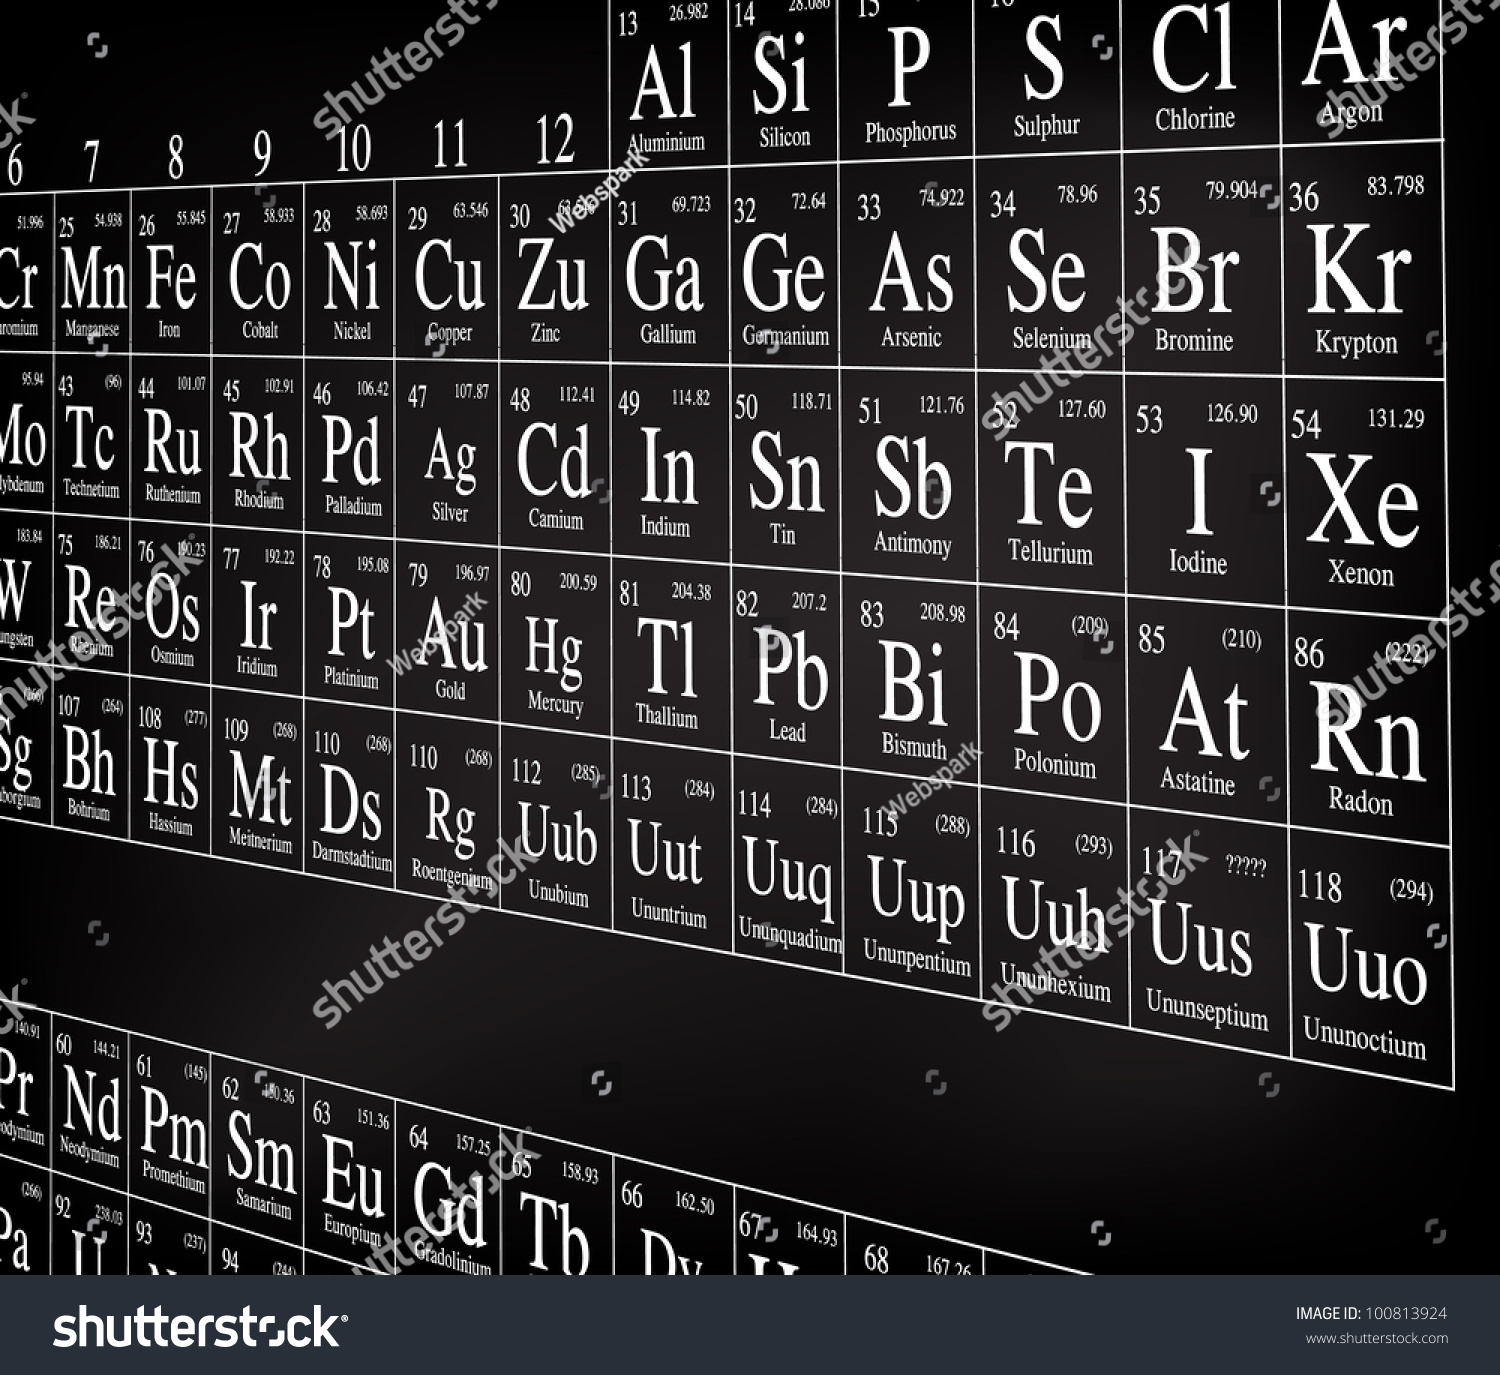 Periodic table black perspective stock vector 100813924 shutterstock periodic table black perspective gamestrikefo Gallery